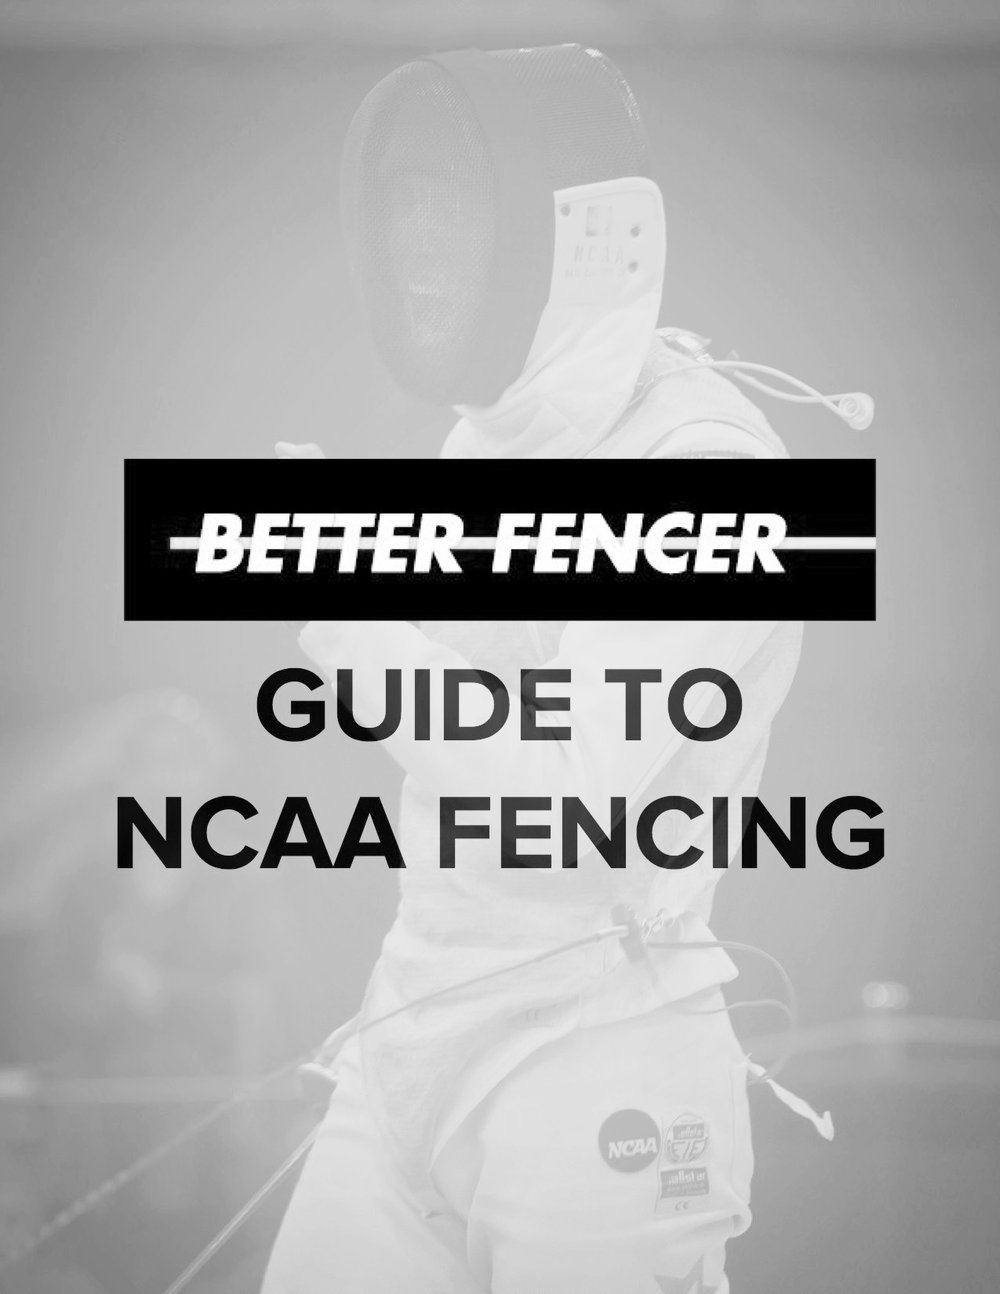 The ultimate guide to college / NCAA fencing written by Better Fencer and Jason Rogers